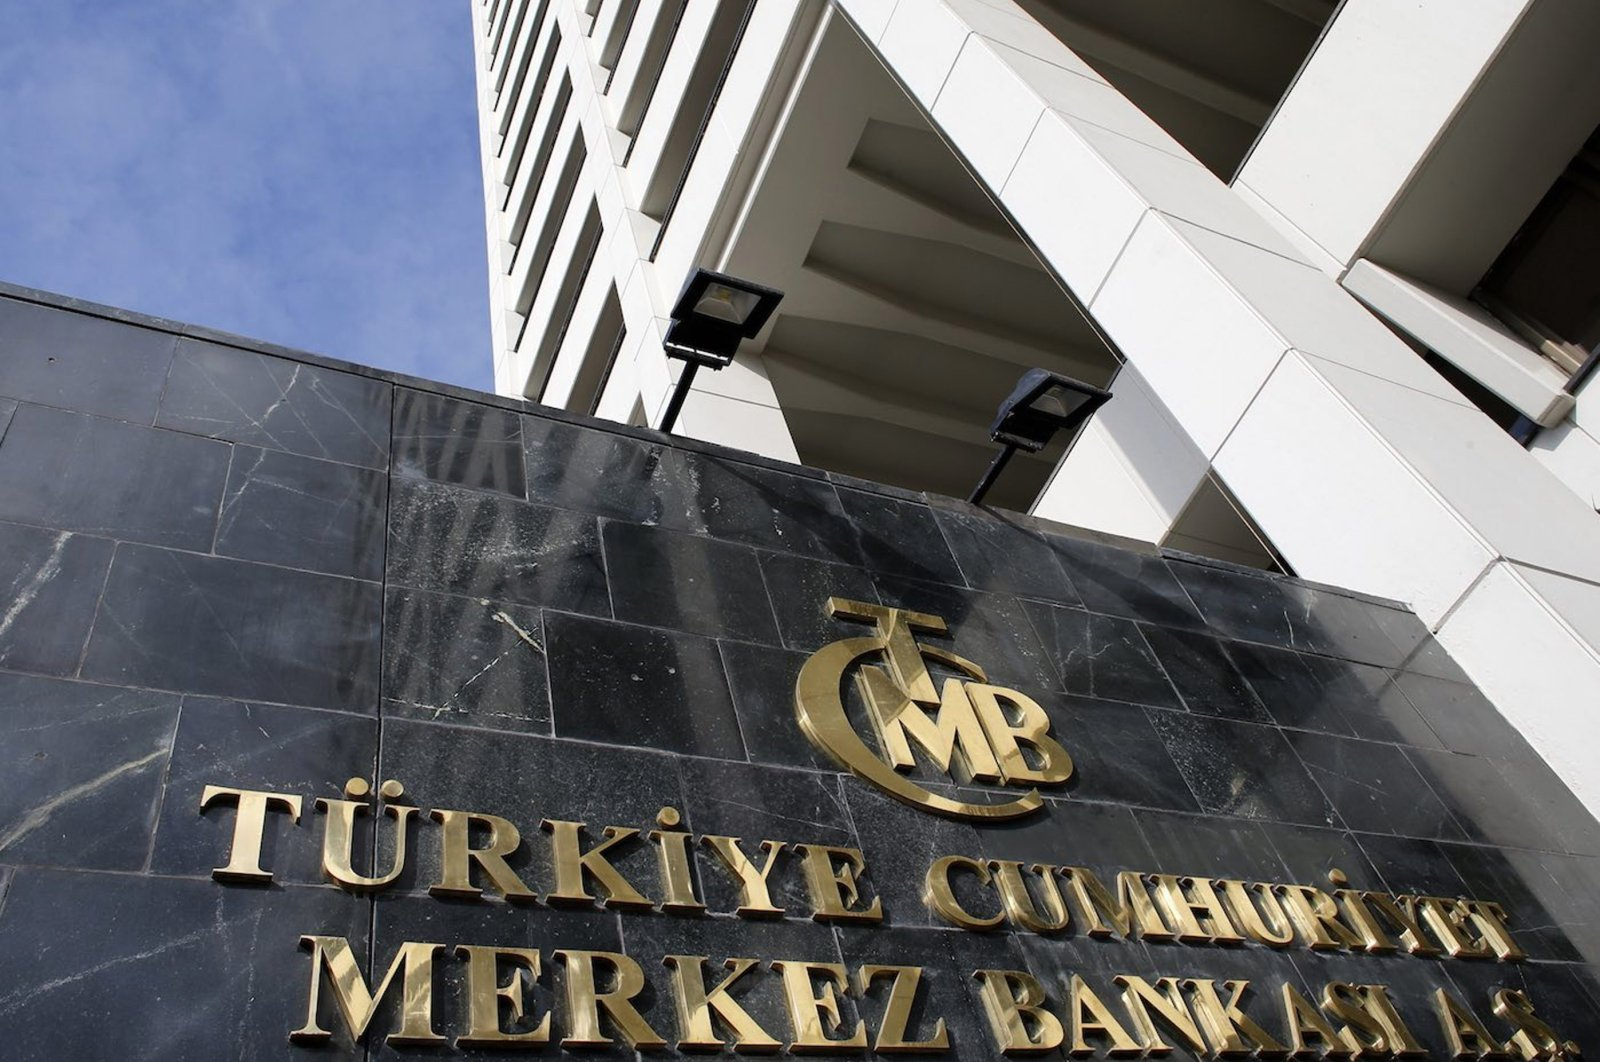 The Central Bank of the Republic of Turkey (CBRT) headquarters in the capital Ankara, Turkey, Jan. 24, 2014. (Reuters Photo)